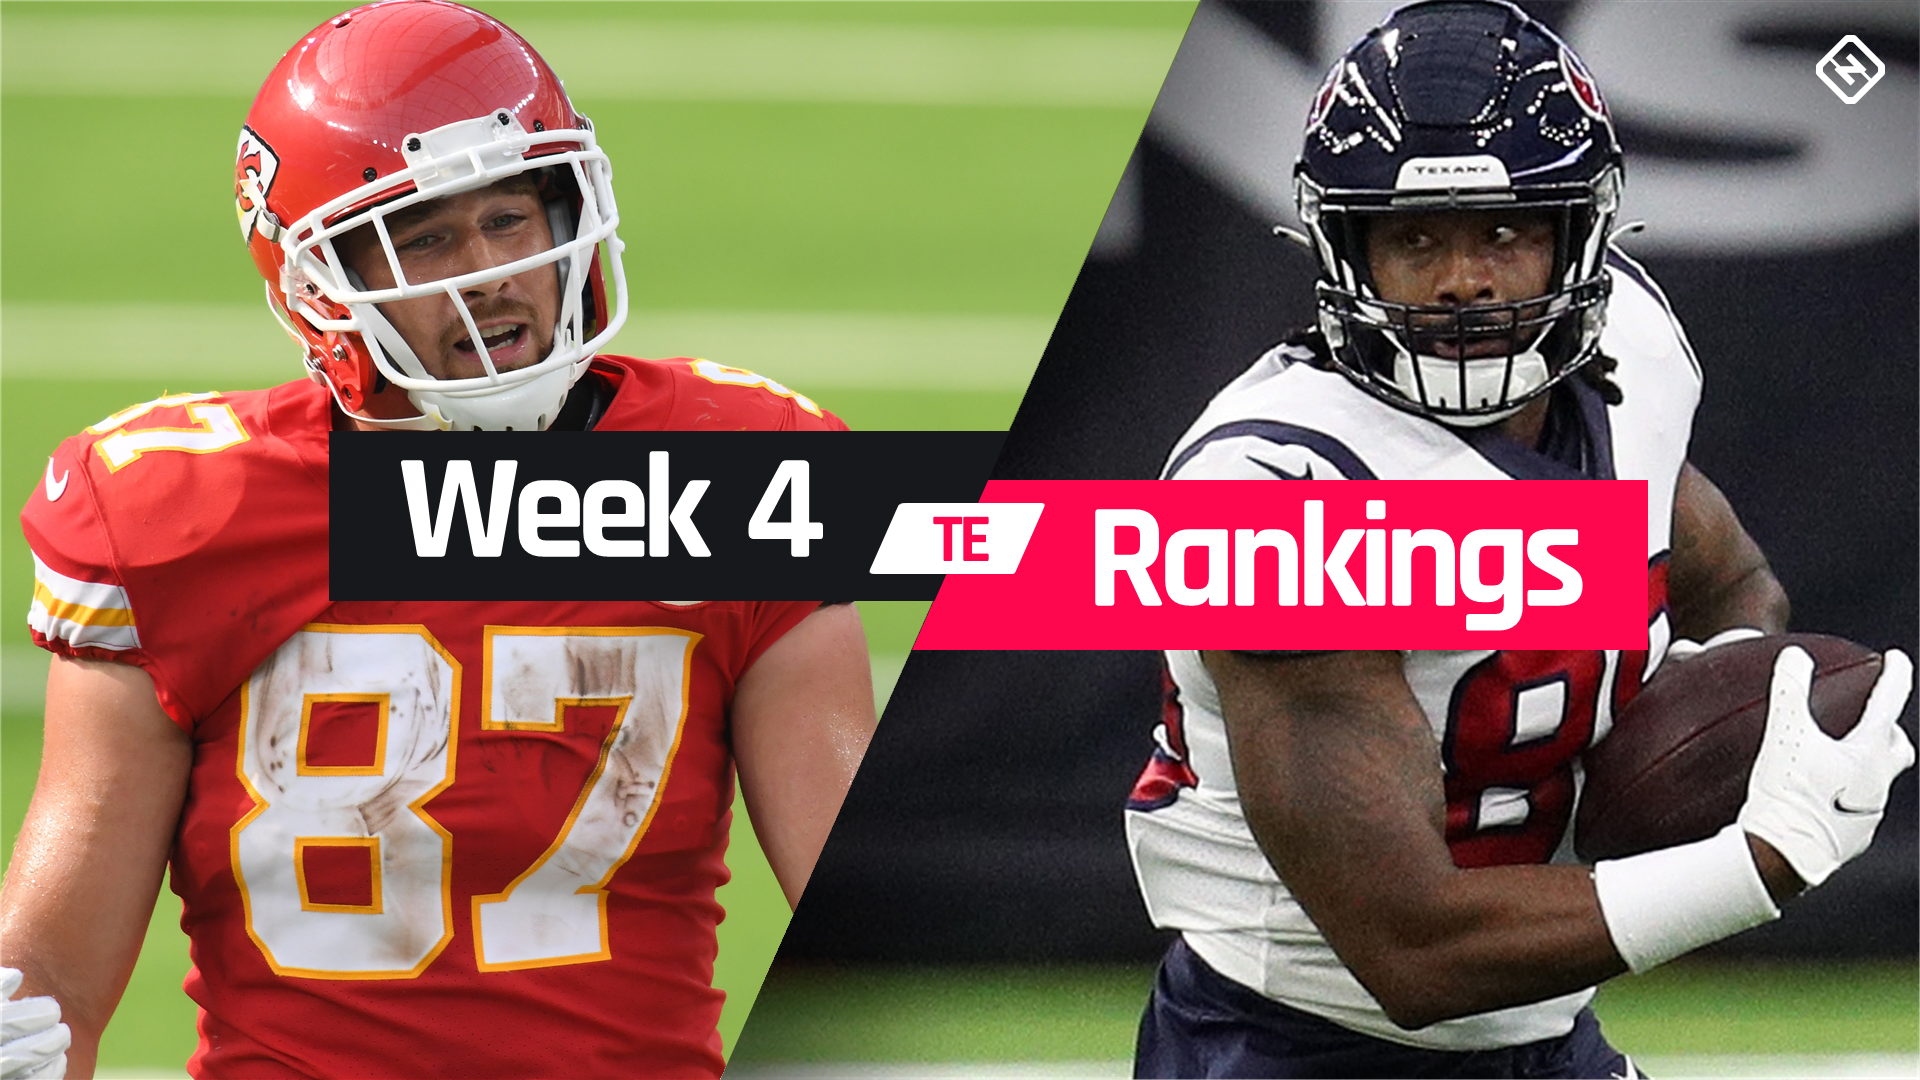 Week 4 Fantasy Football Tight End Rankings